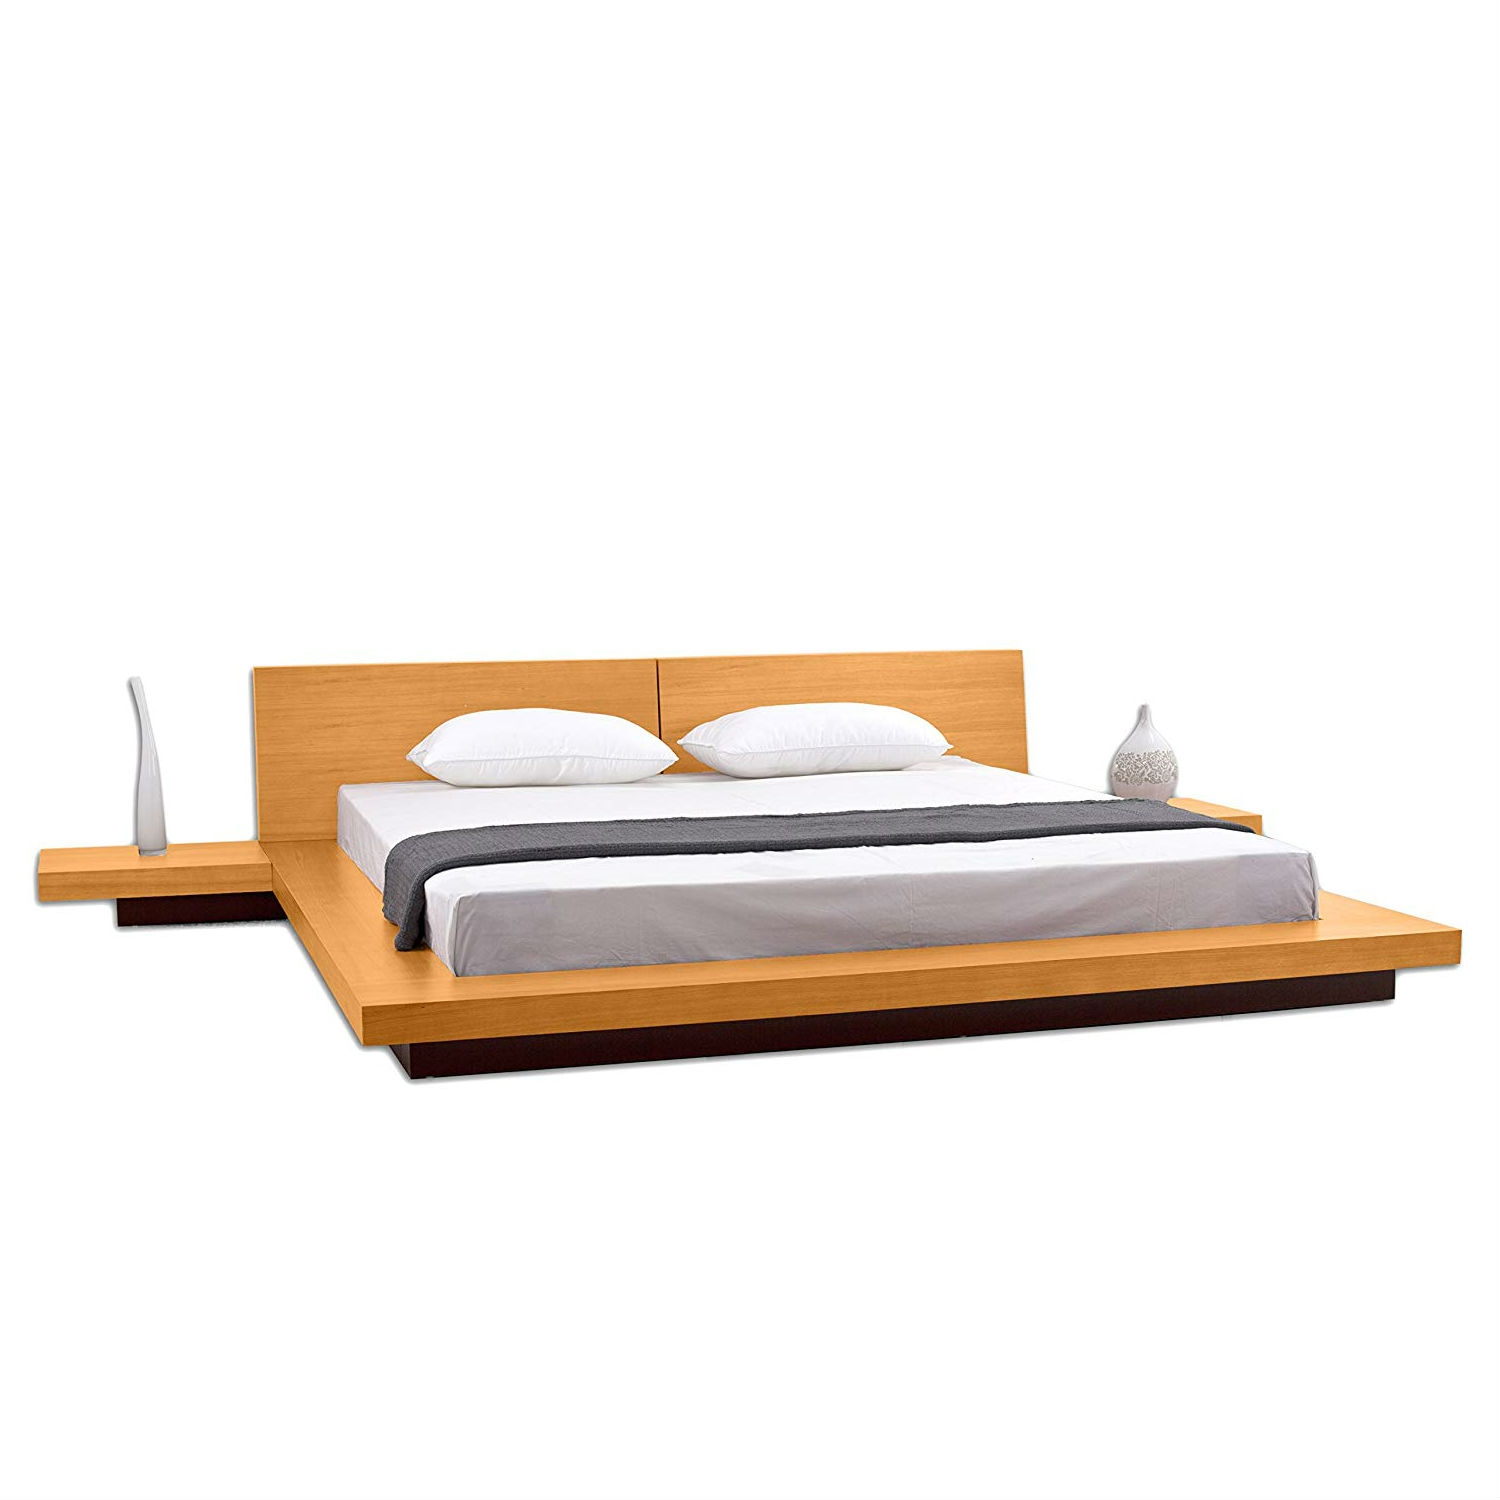 . California King size Modern Platform Bed with Headboard and 2 Nightstands  in Oak